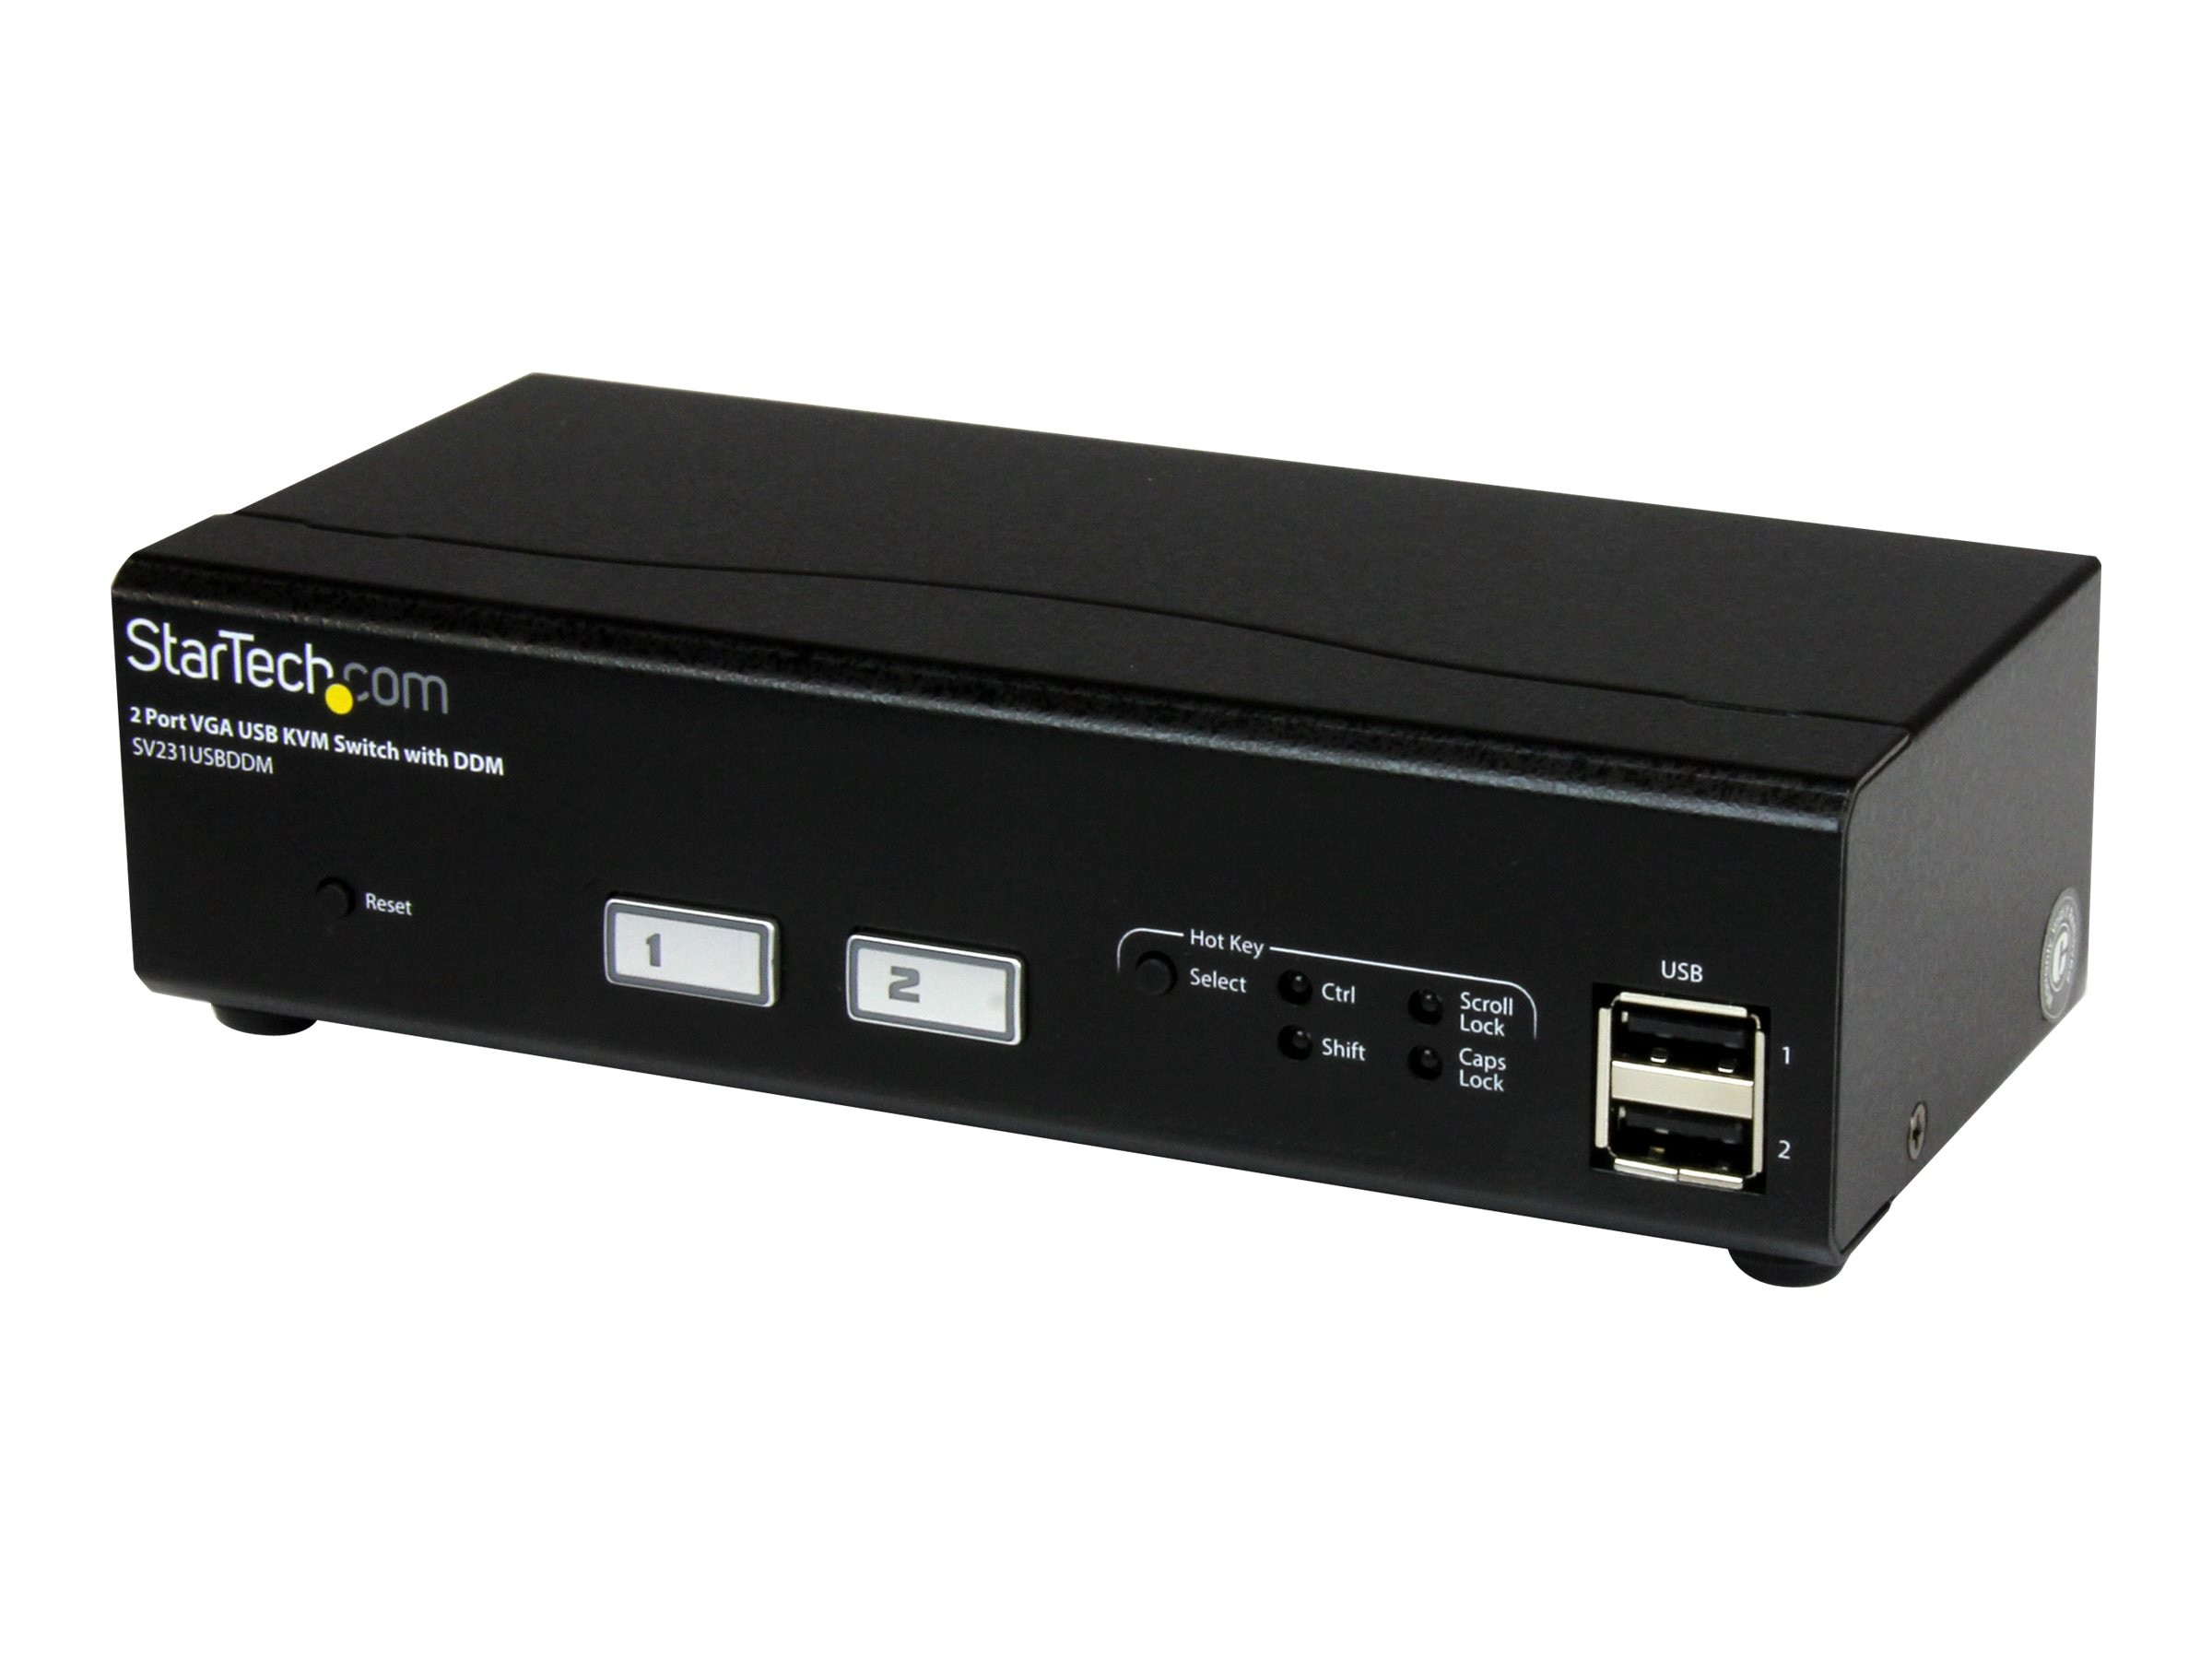 StarTech.com 2-Port USB VGA KVM Switch with DDM Fast Switching Technology and Cables